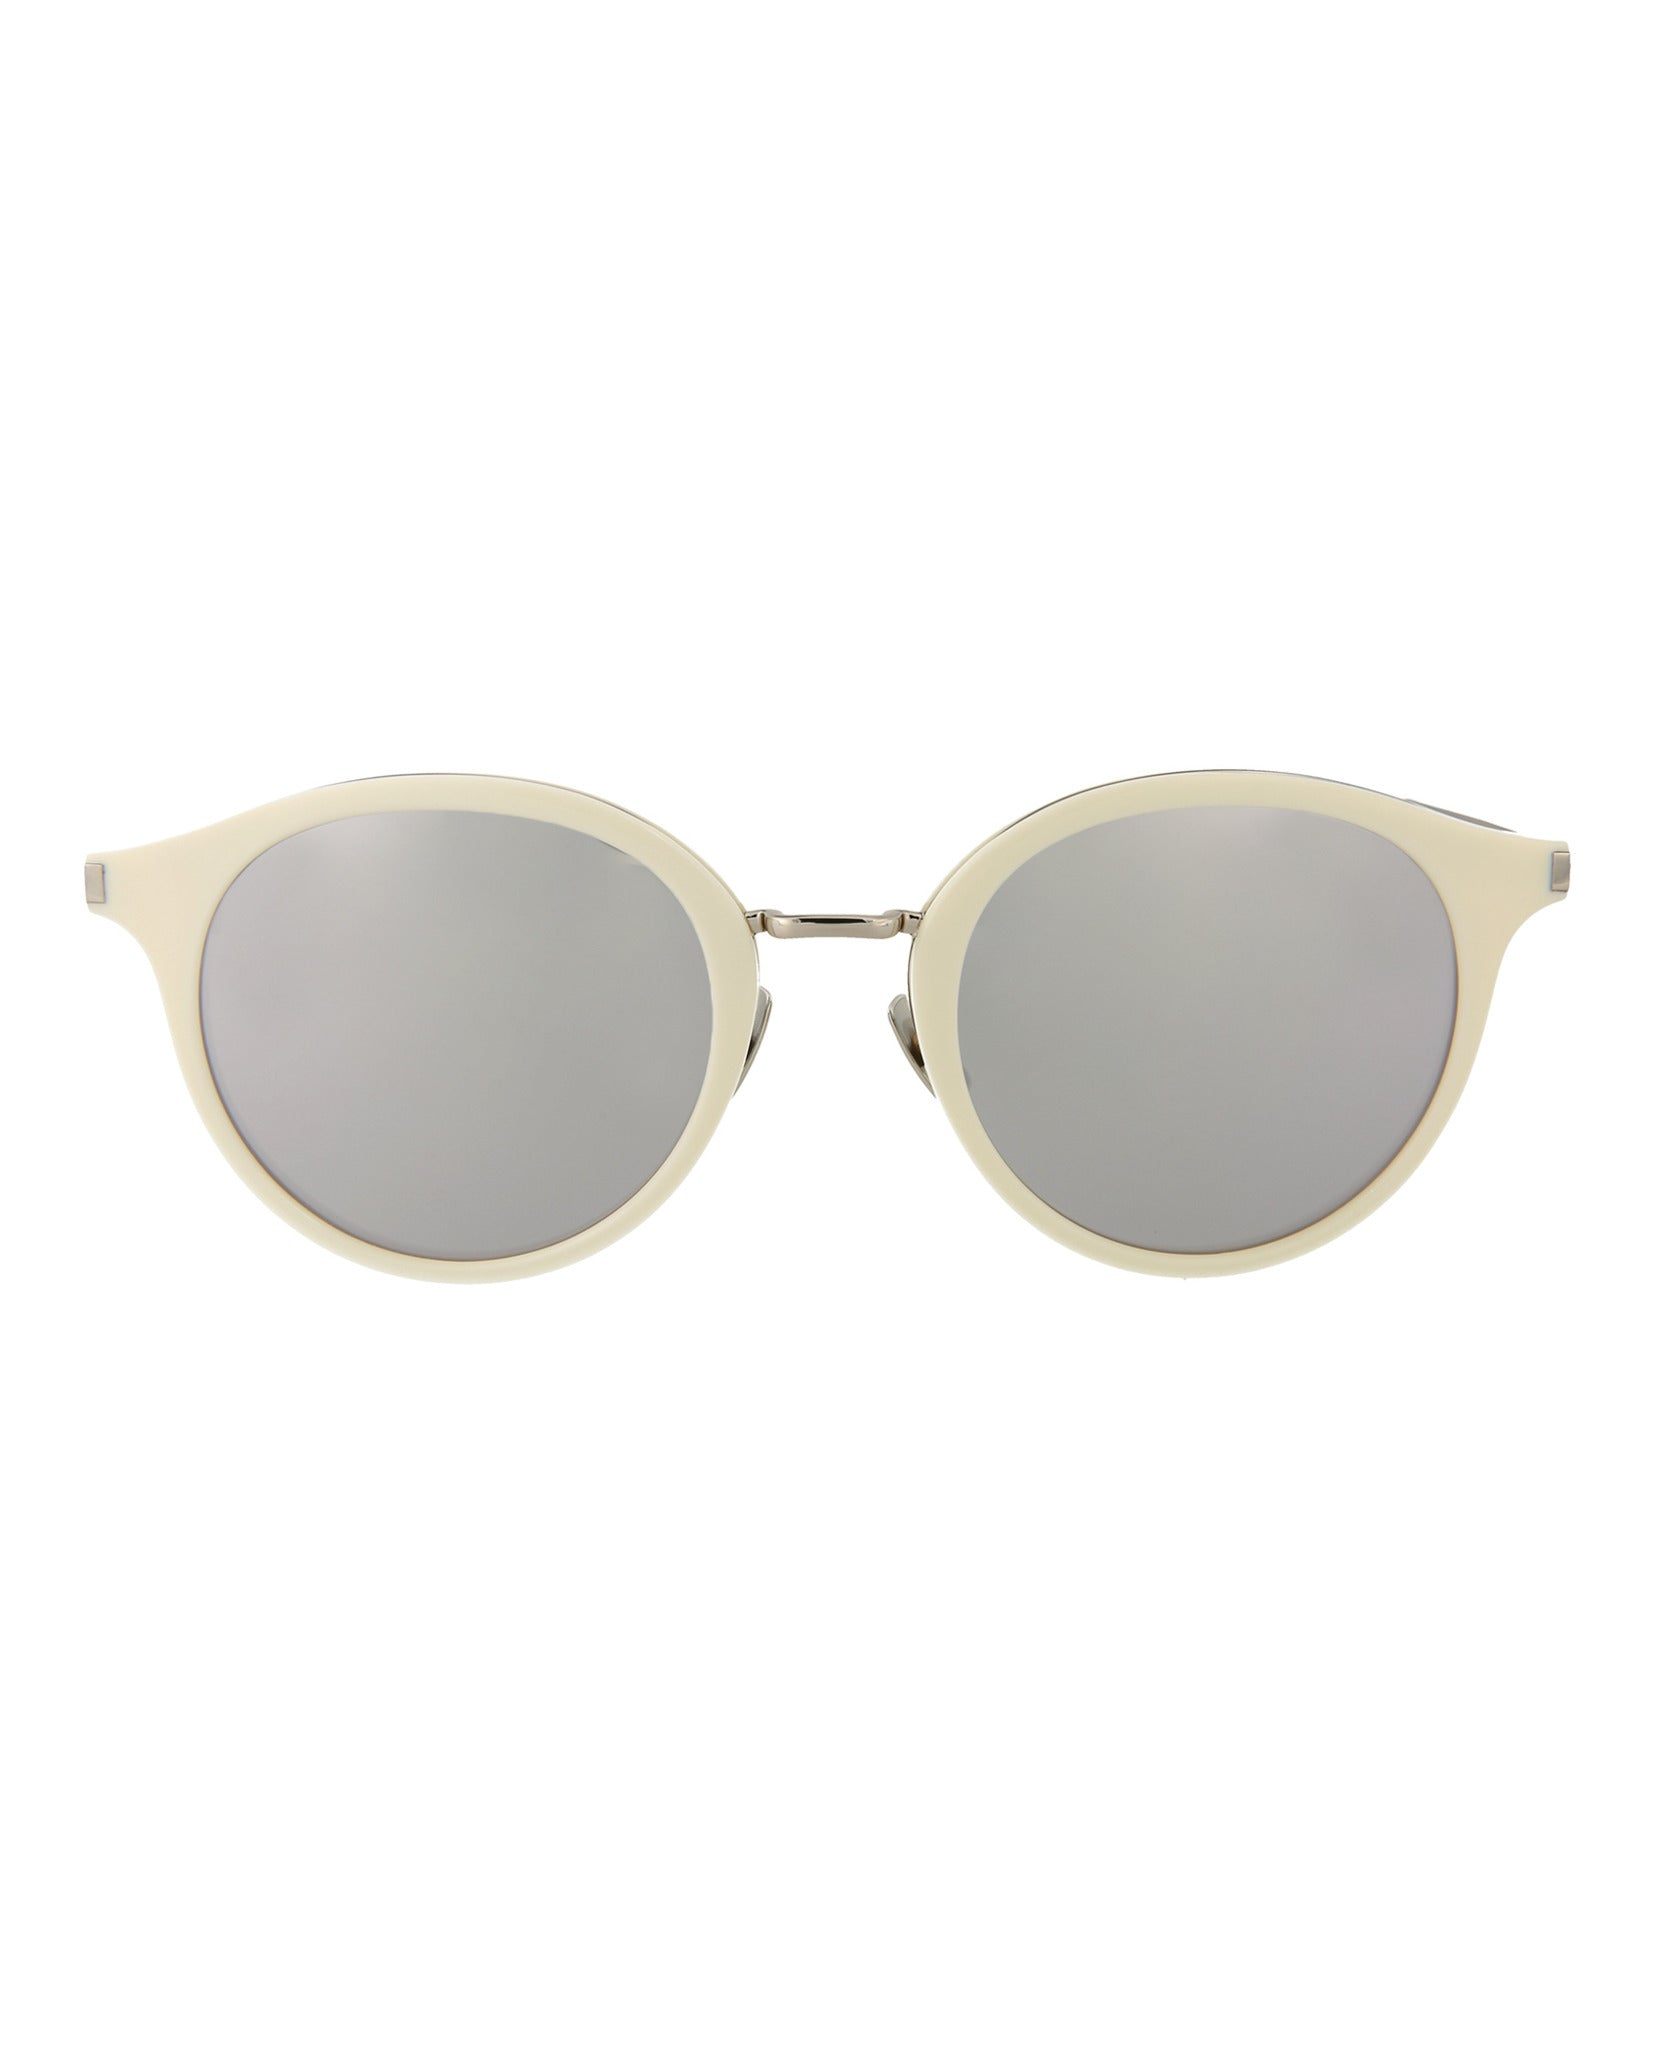 Saint Laurent Panthos Sunglasses